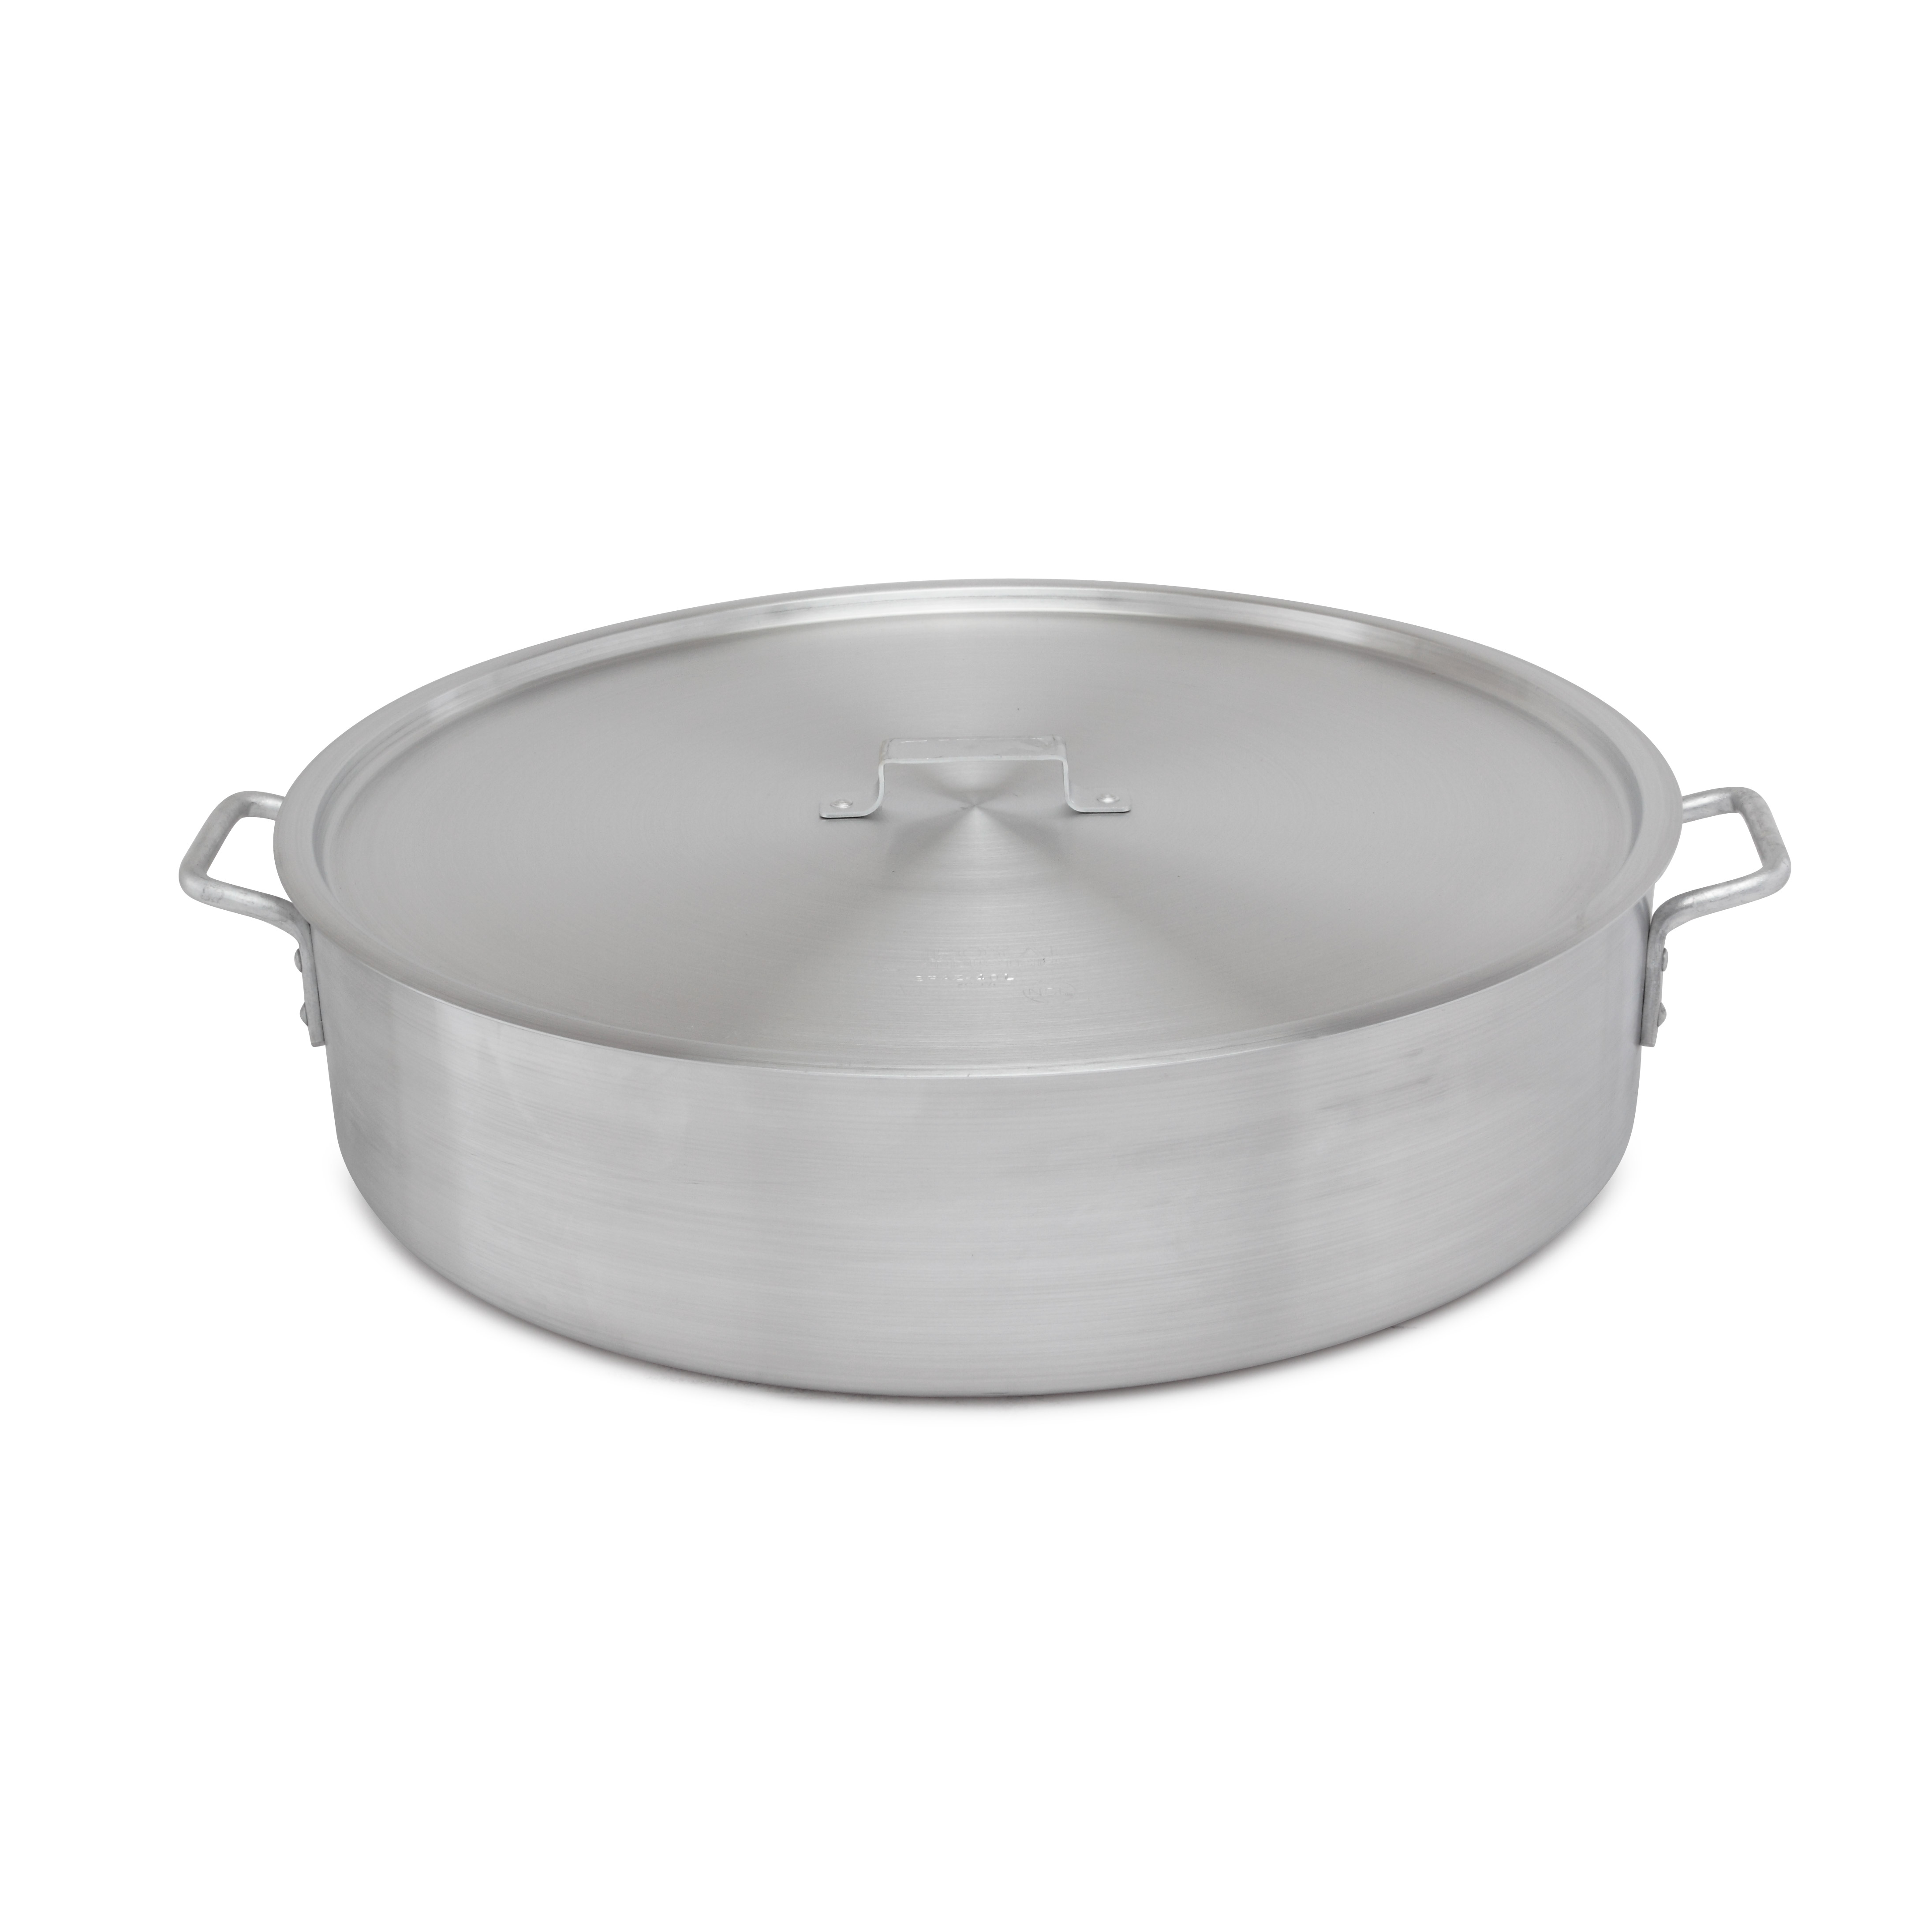 Royal Industries ROY BRAZ SW 40 brazier pan